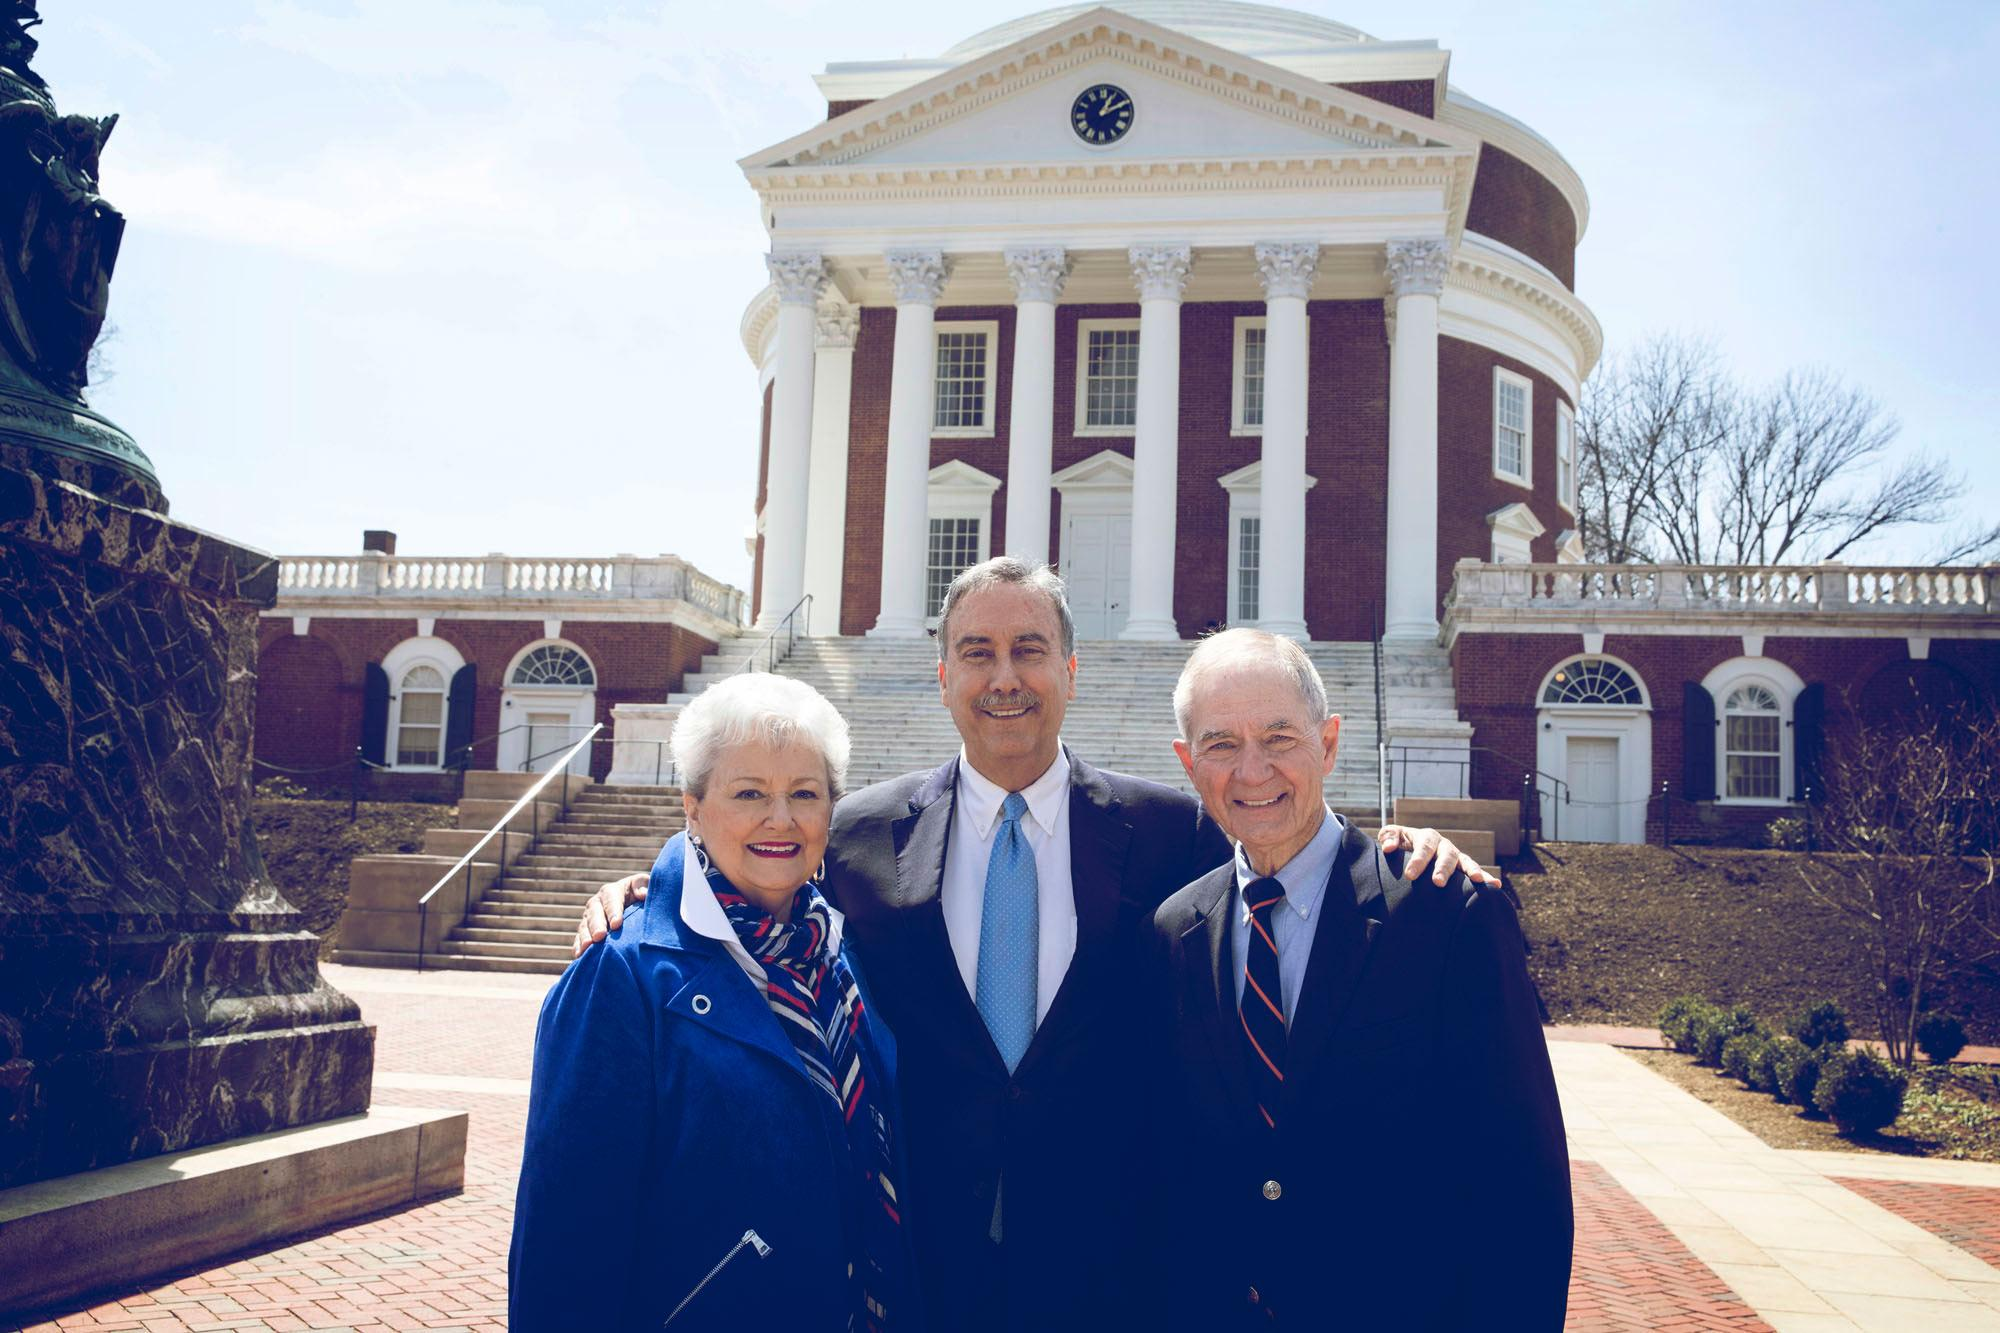 Larry Sabato, center, and Leonard and Jerry Sandridge share a commitment to opening UVA's doors to students of all backgrounds.